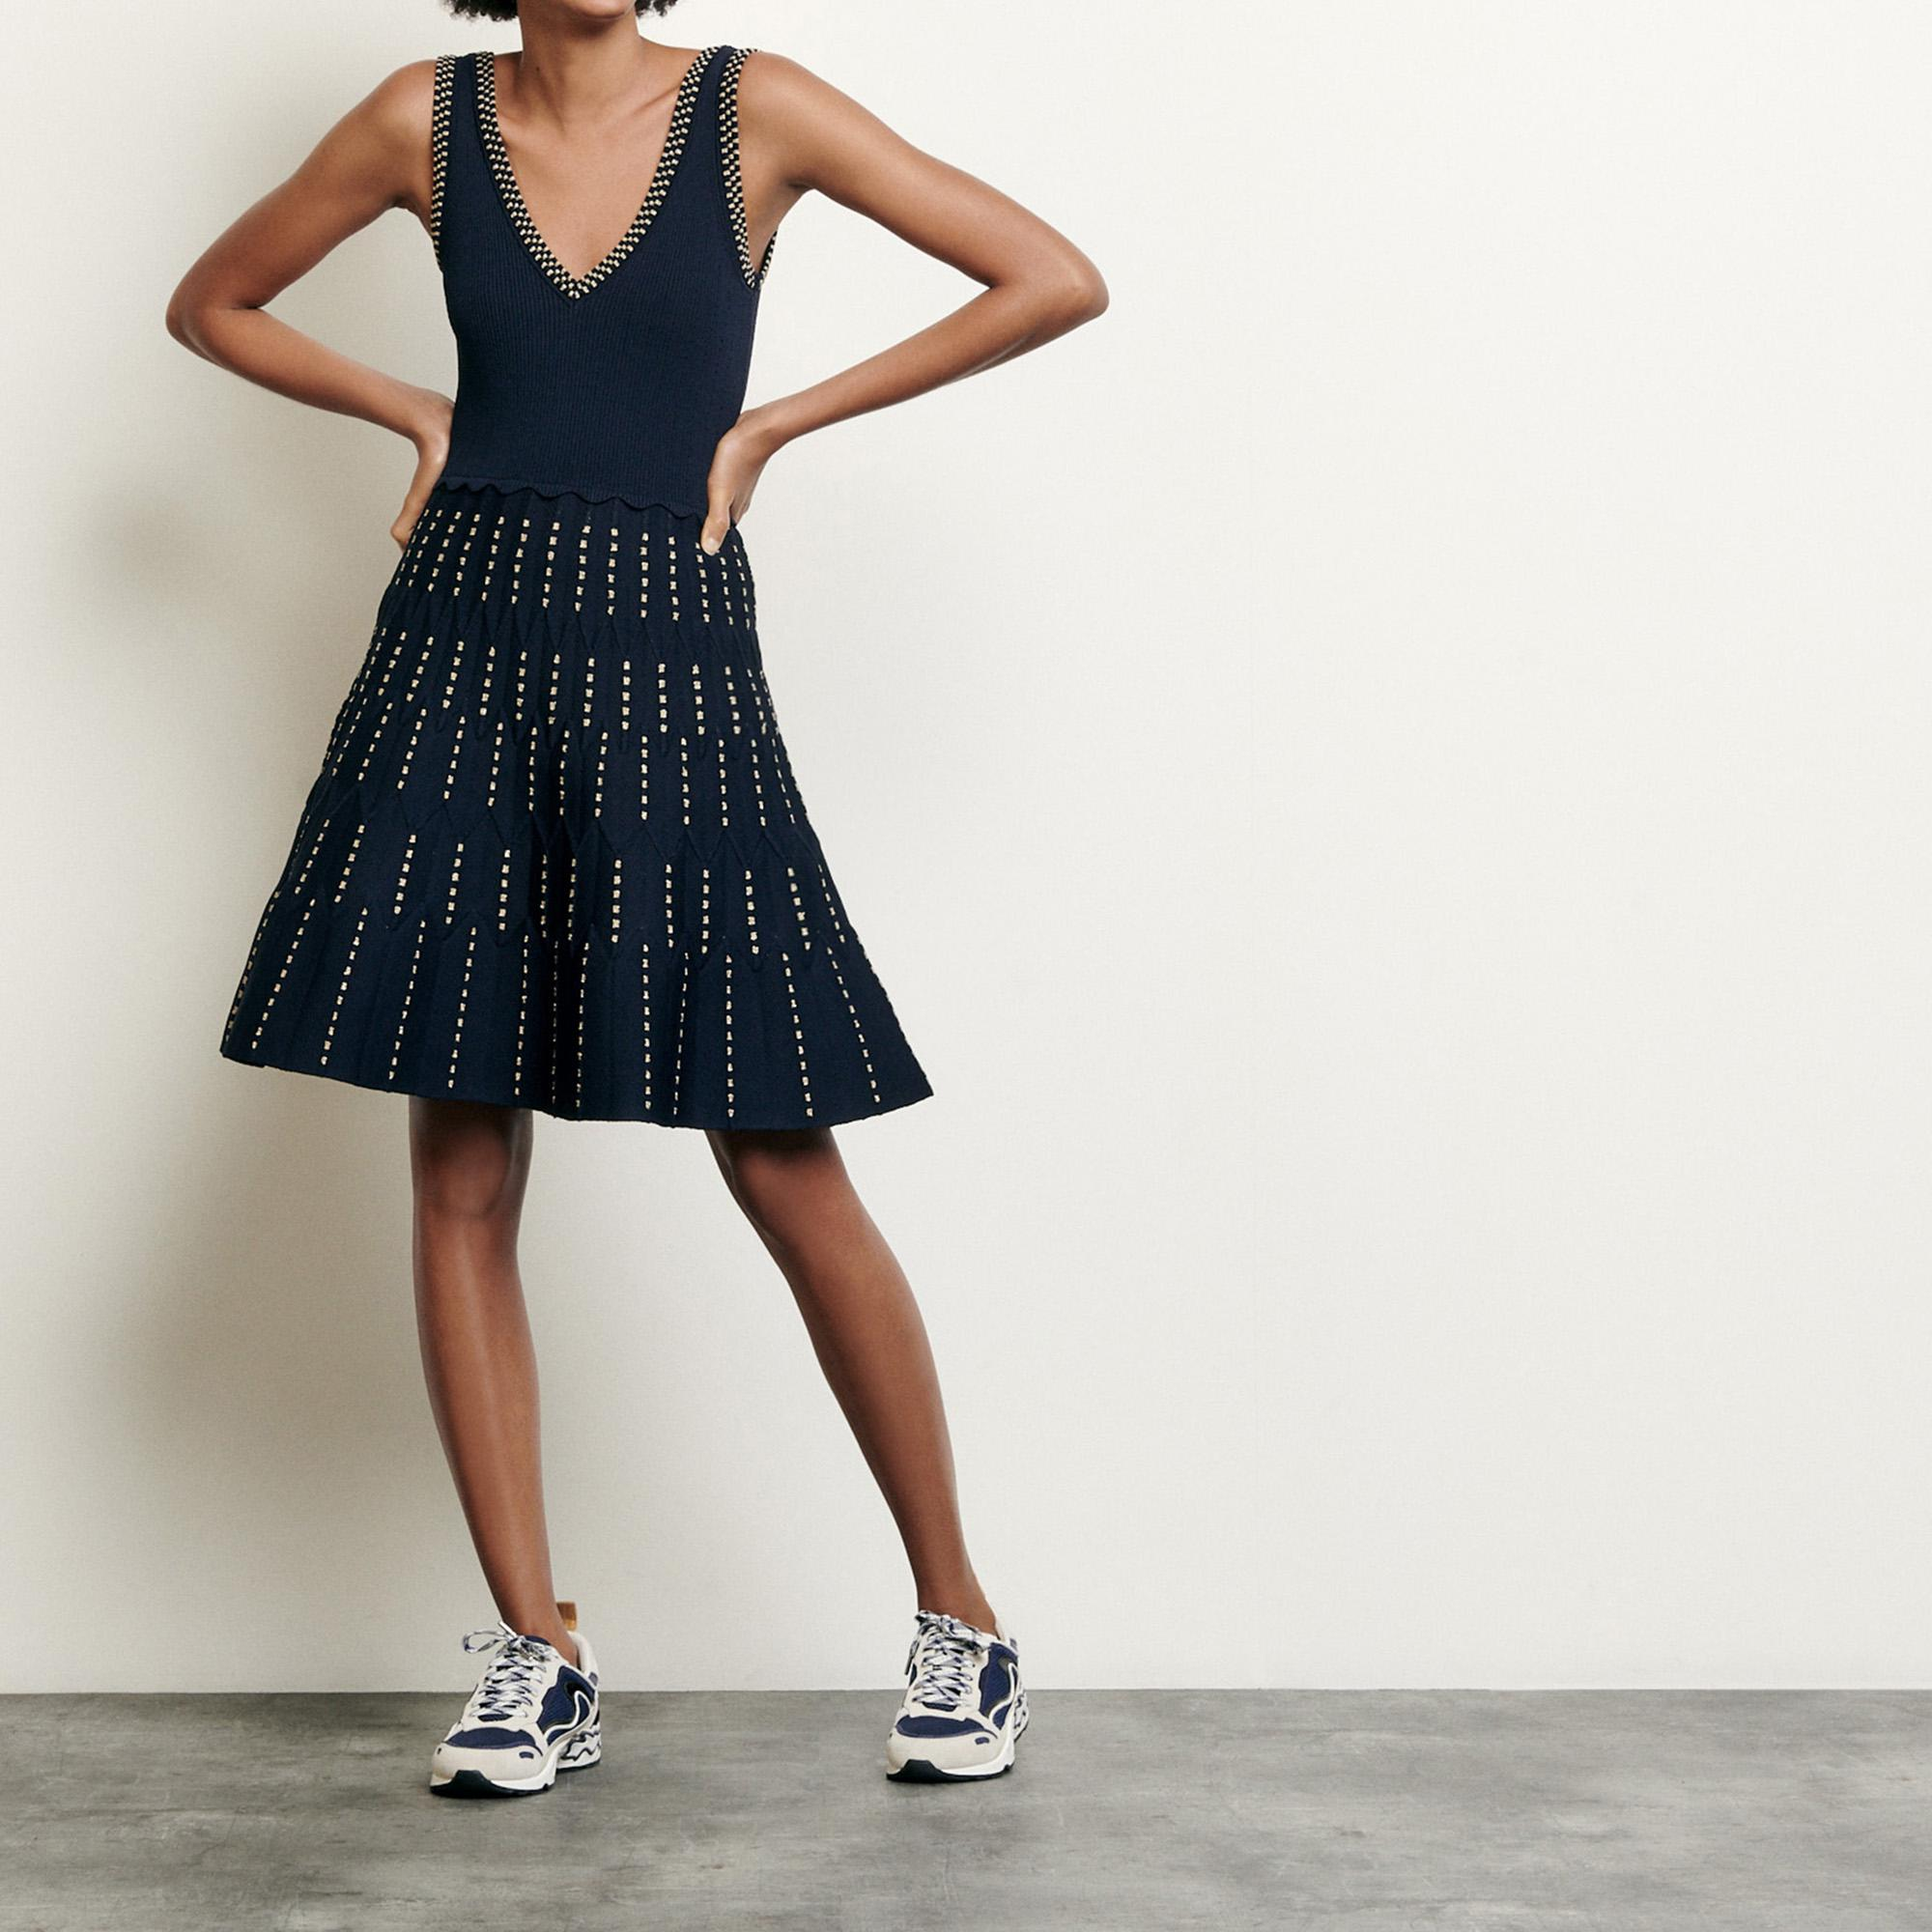 Knitted dress with lurex details